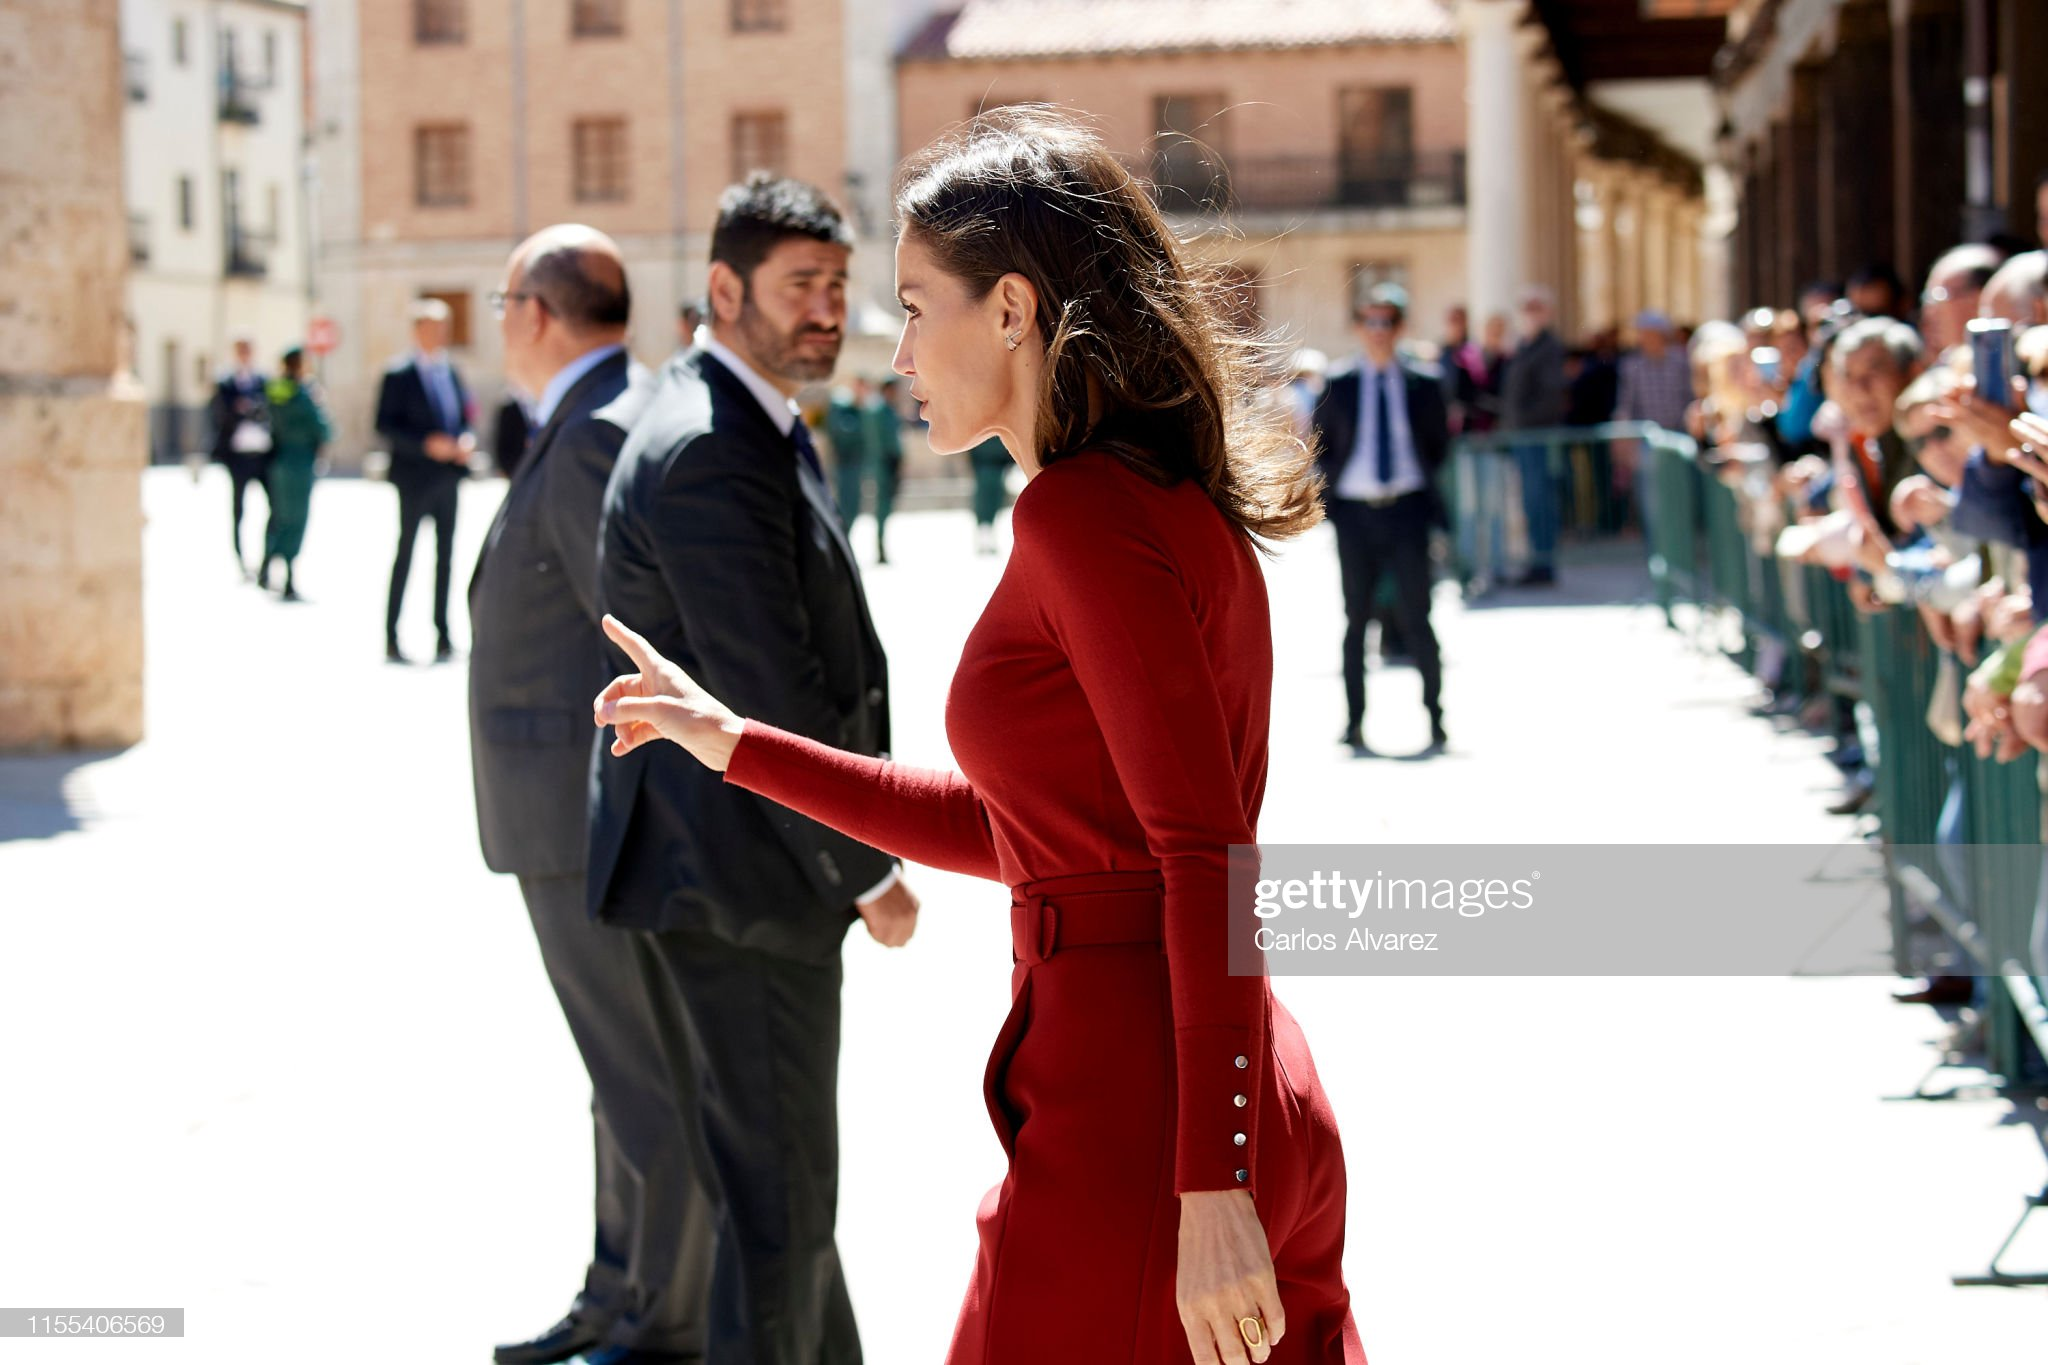 https://media.gettyimages.com/photos/queen-letizia-of-spain-attends-the-closure-of-journalists-seminar-picture-id1155406569?s=2048x2048